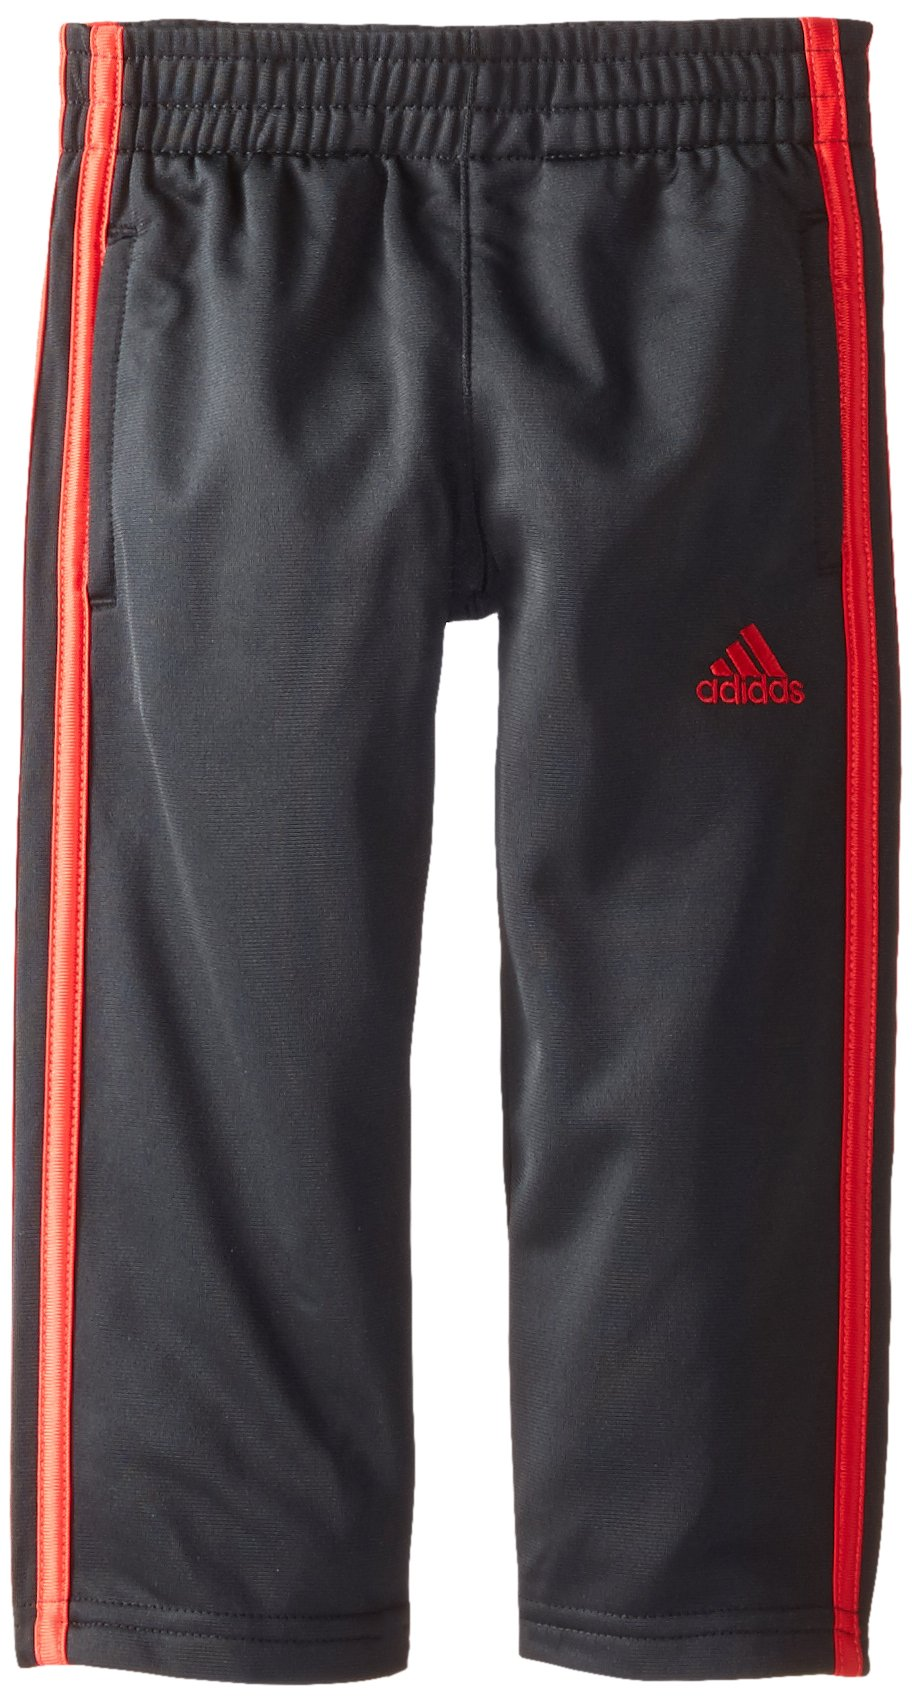 adidas Toddler Boys' Tricot Pant, Black/Light Scarlet, 4 by adidas